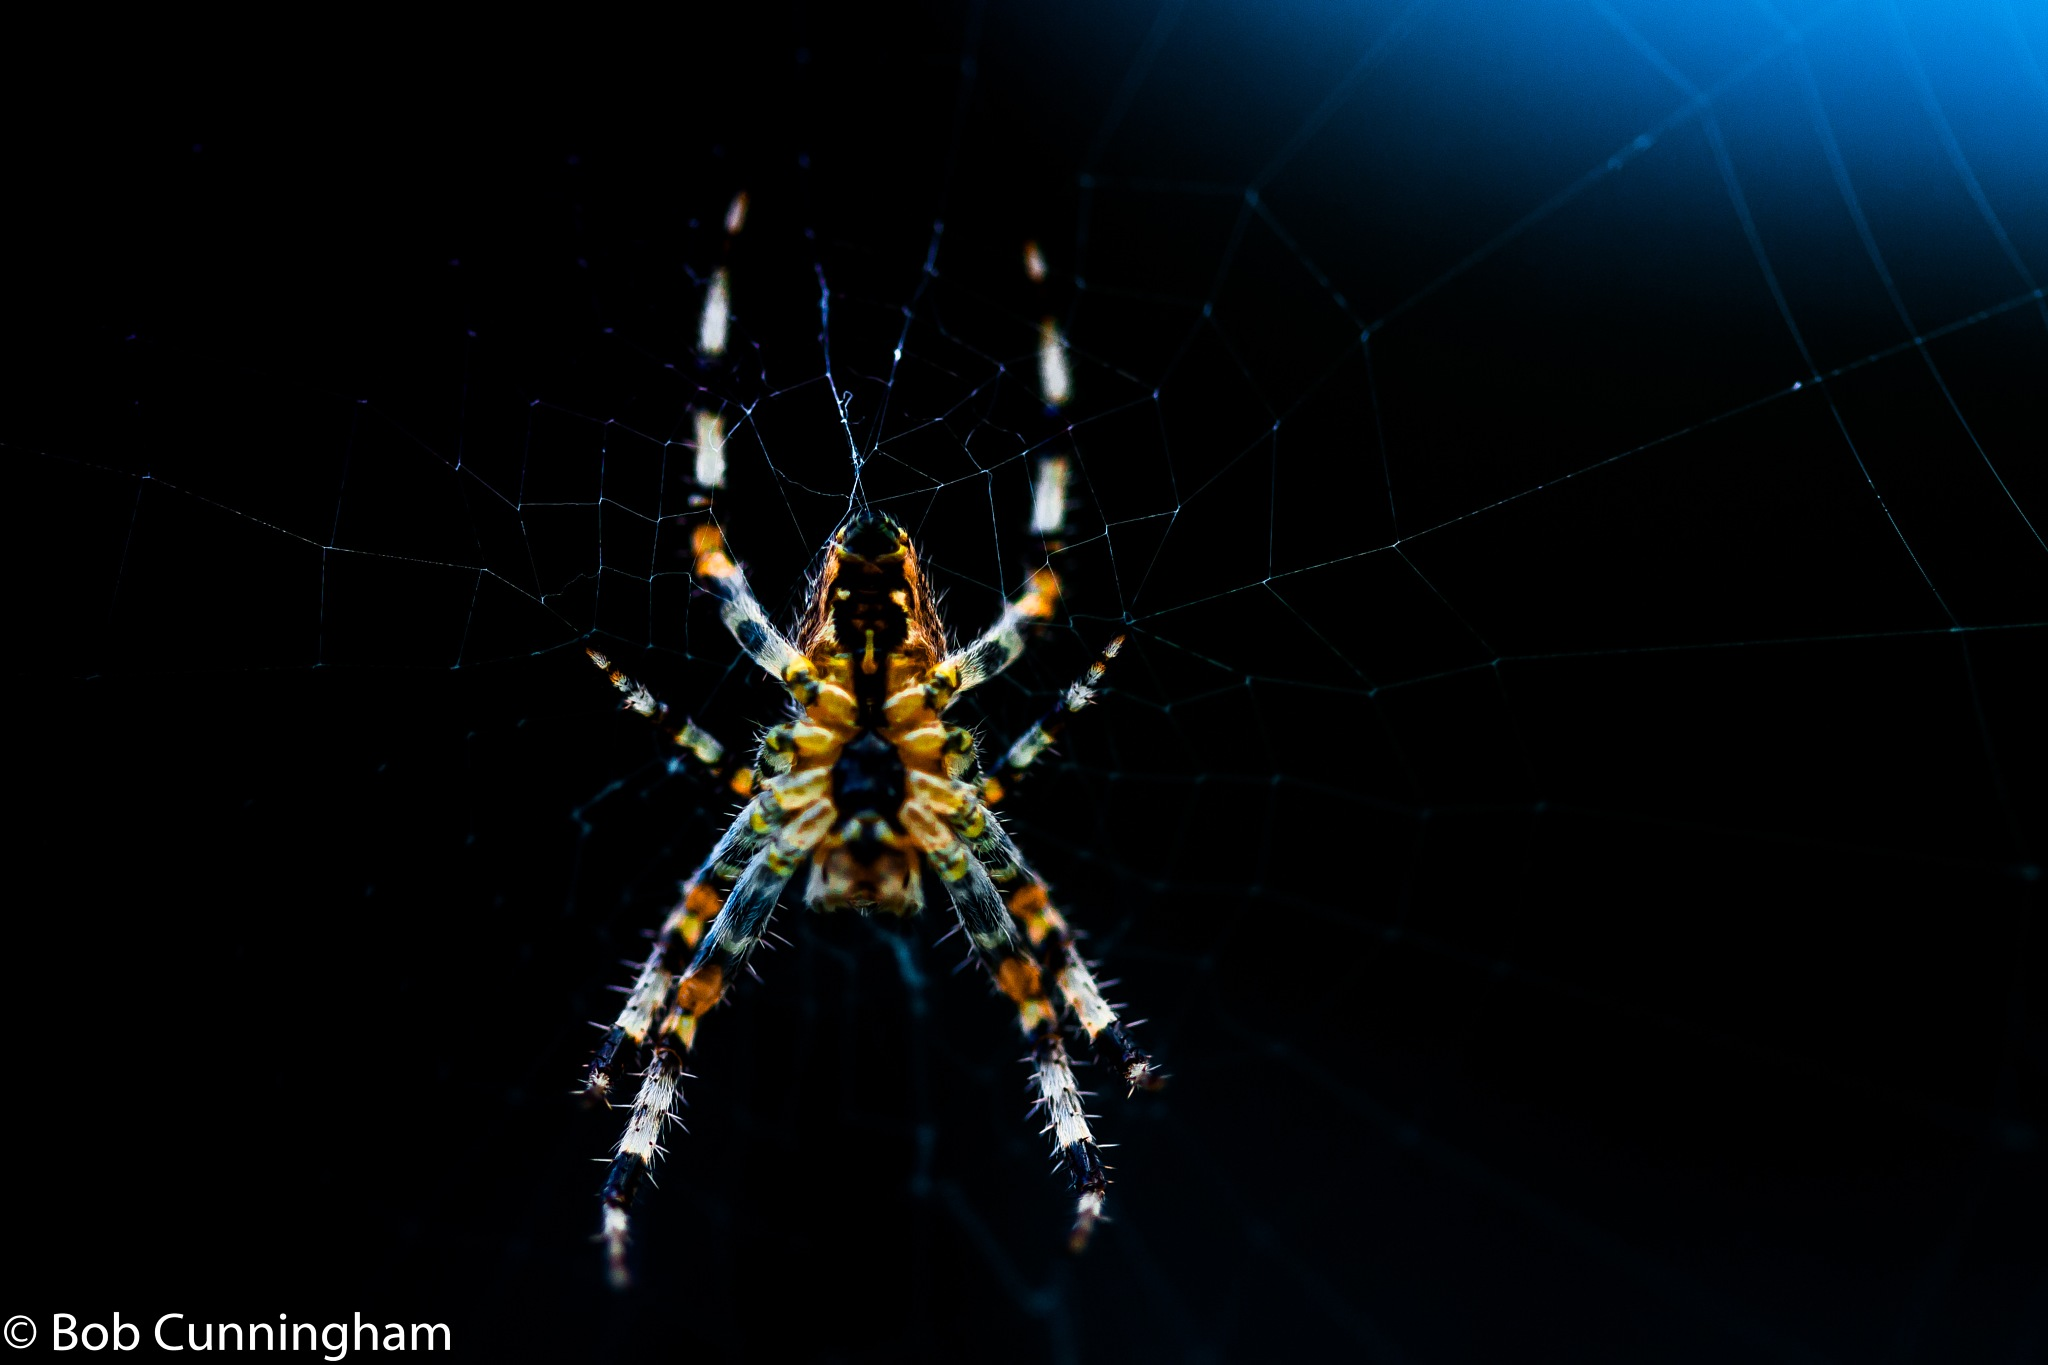 Spider by bob.cunningham.56884